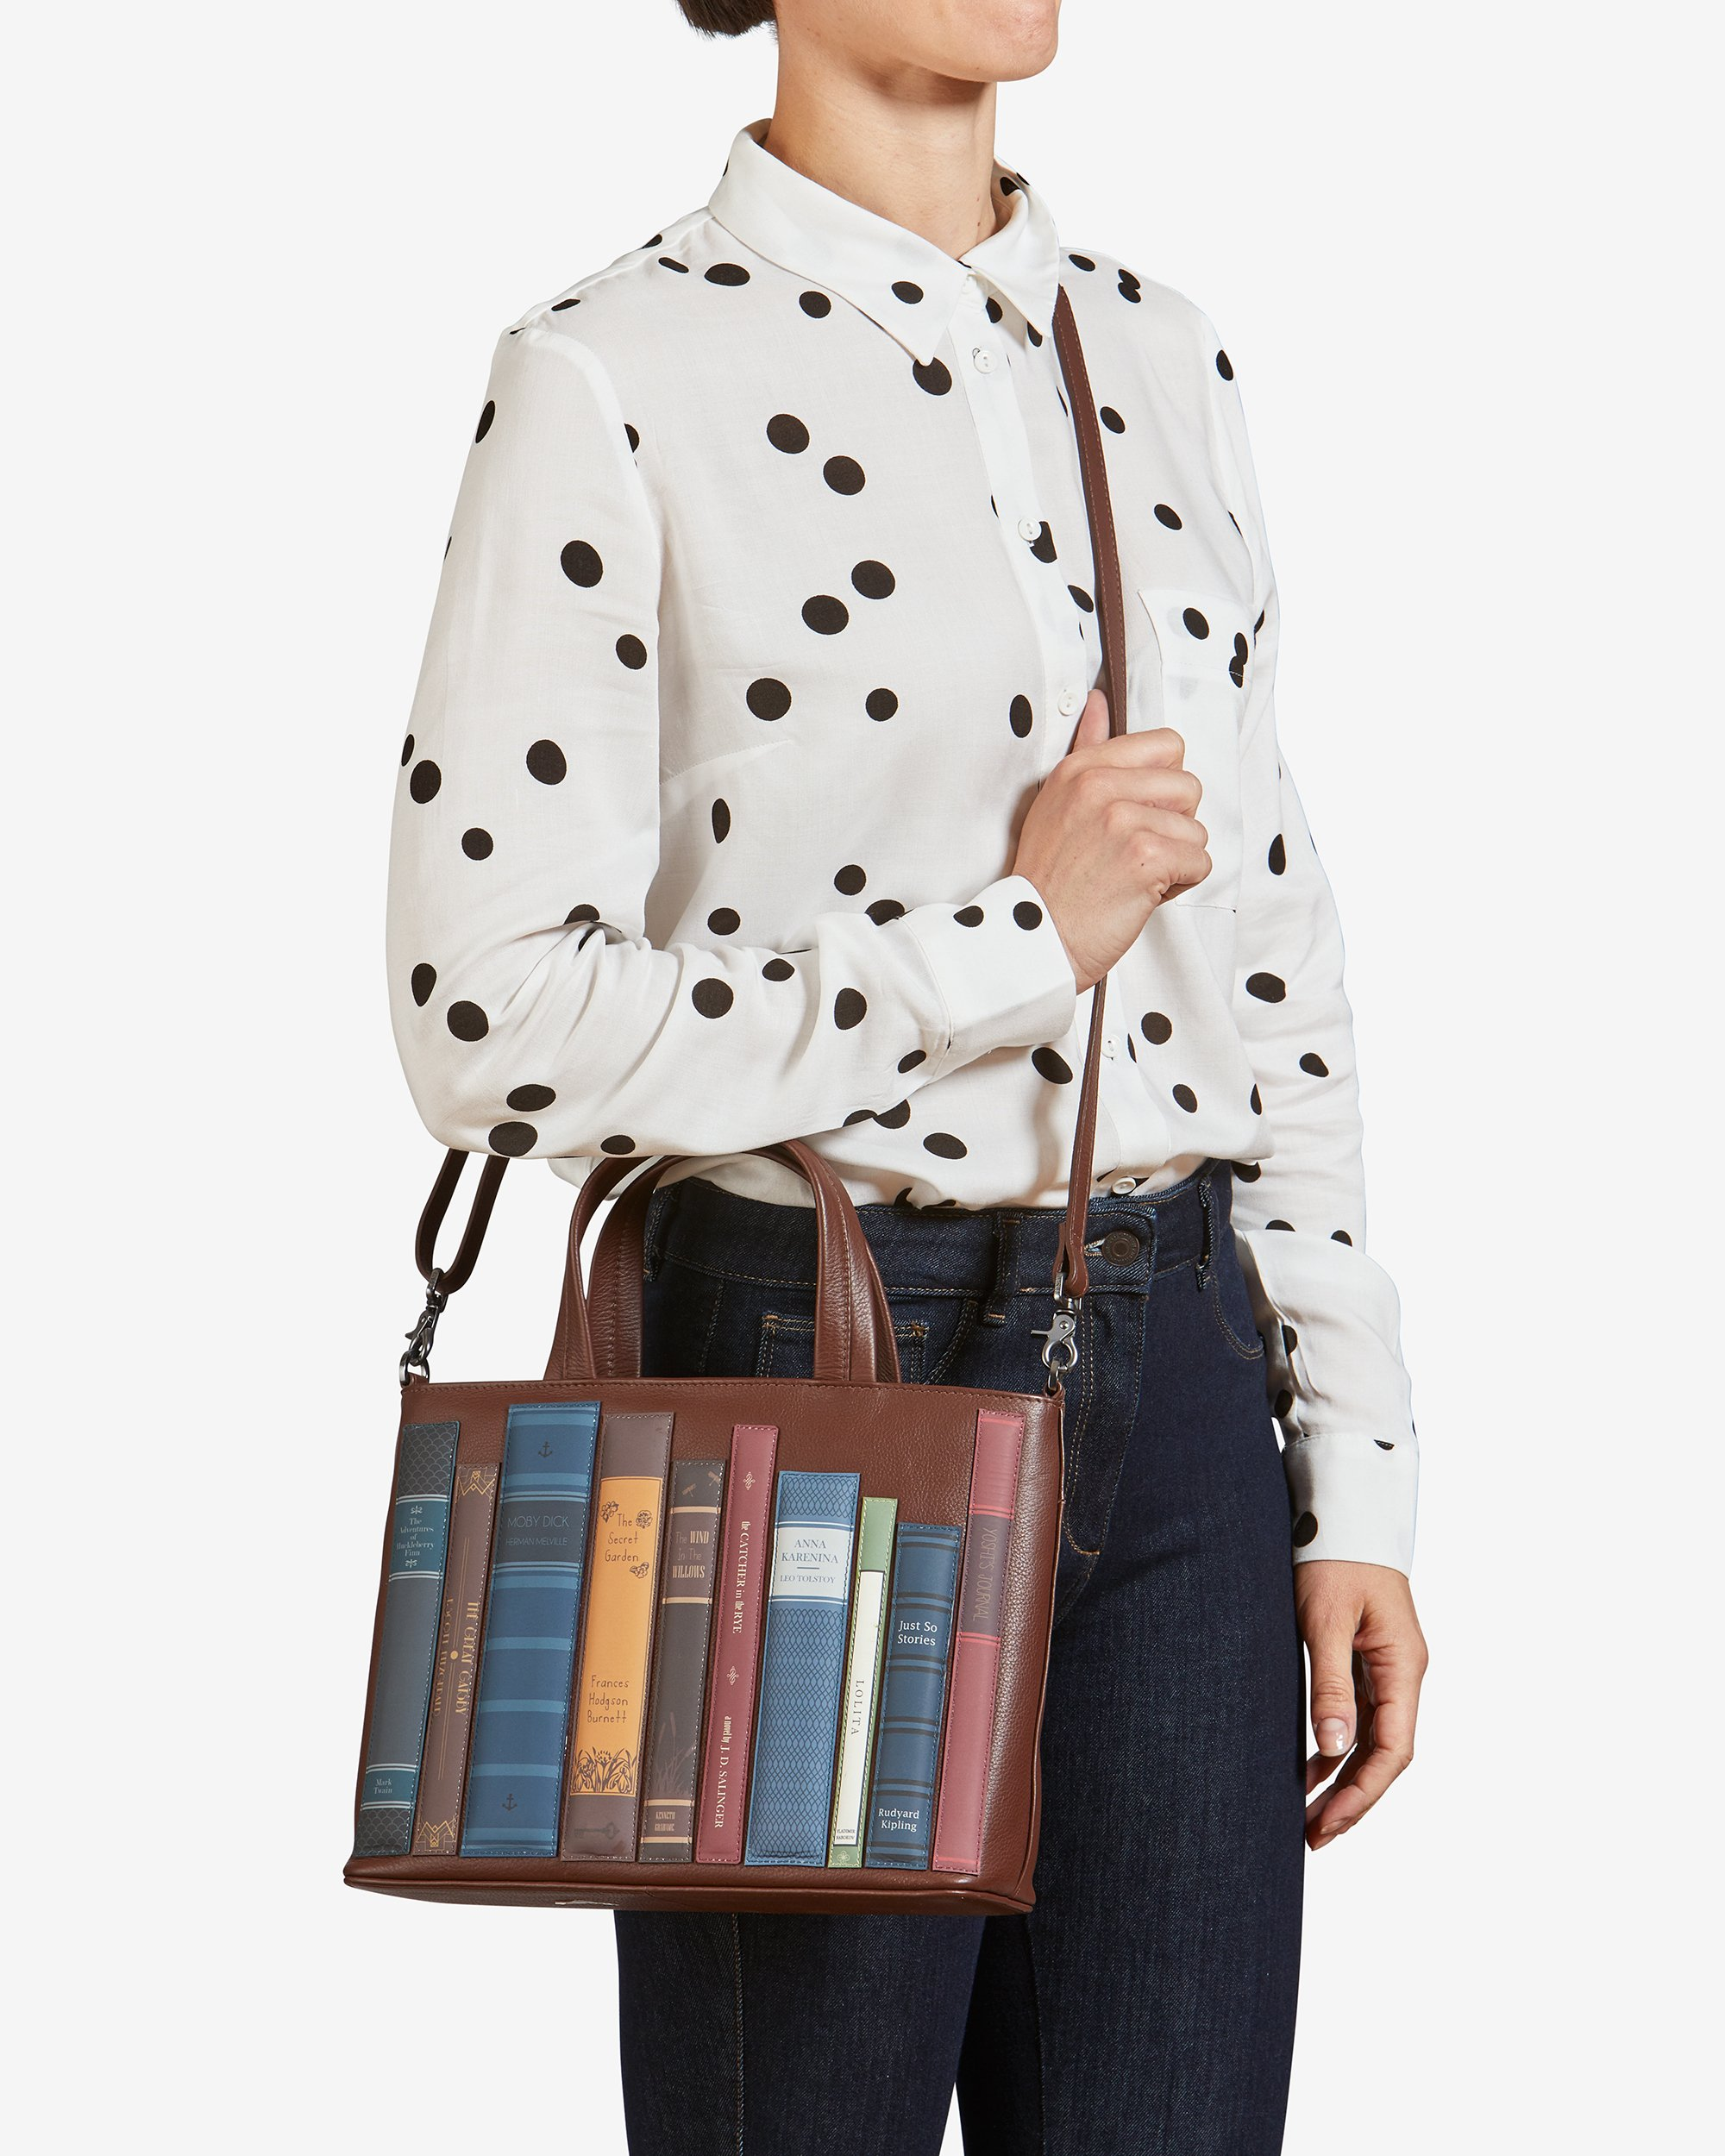 Bookworm Brown Leather Shoulder Bag handmade by yoshi